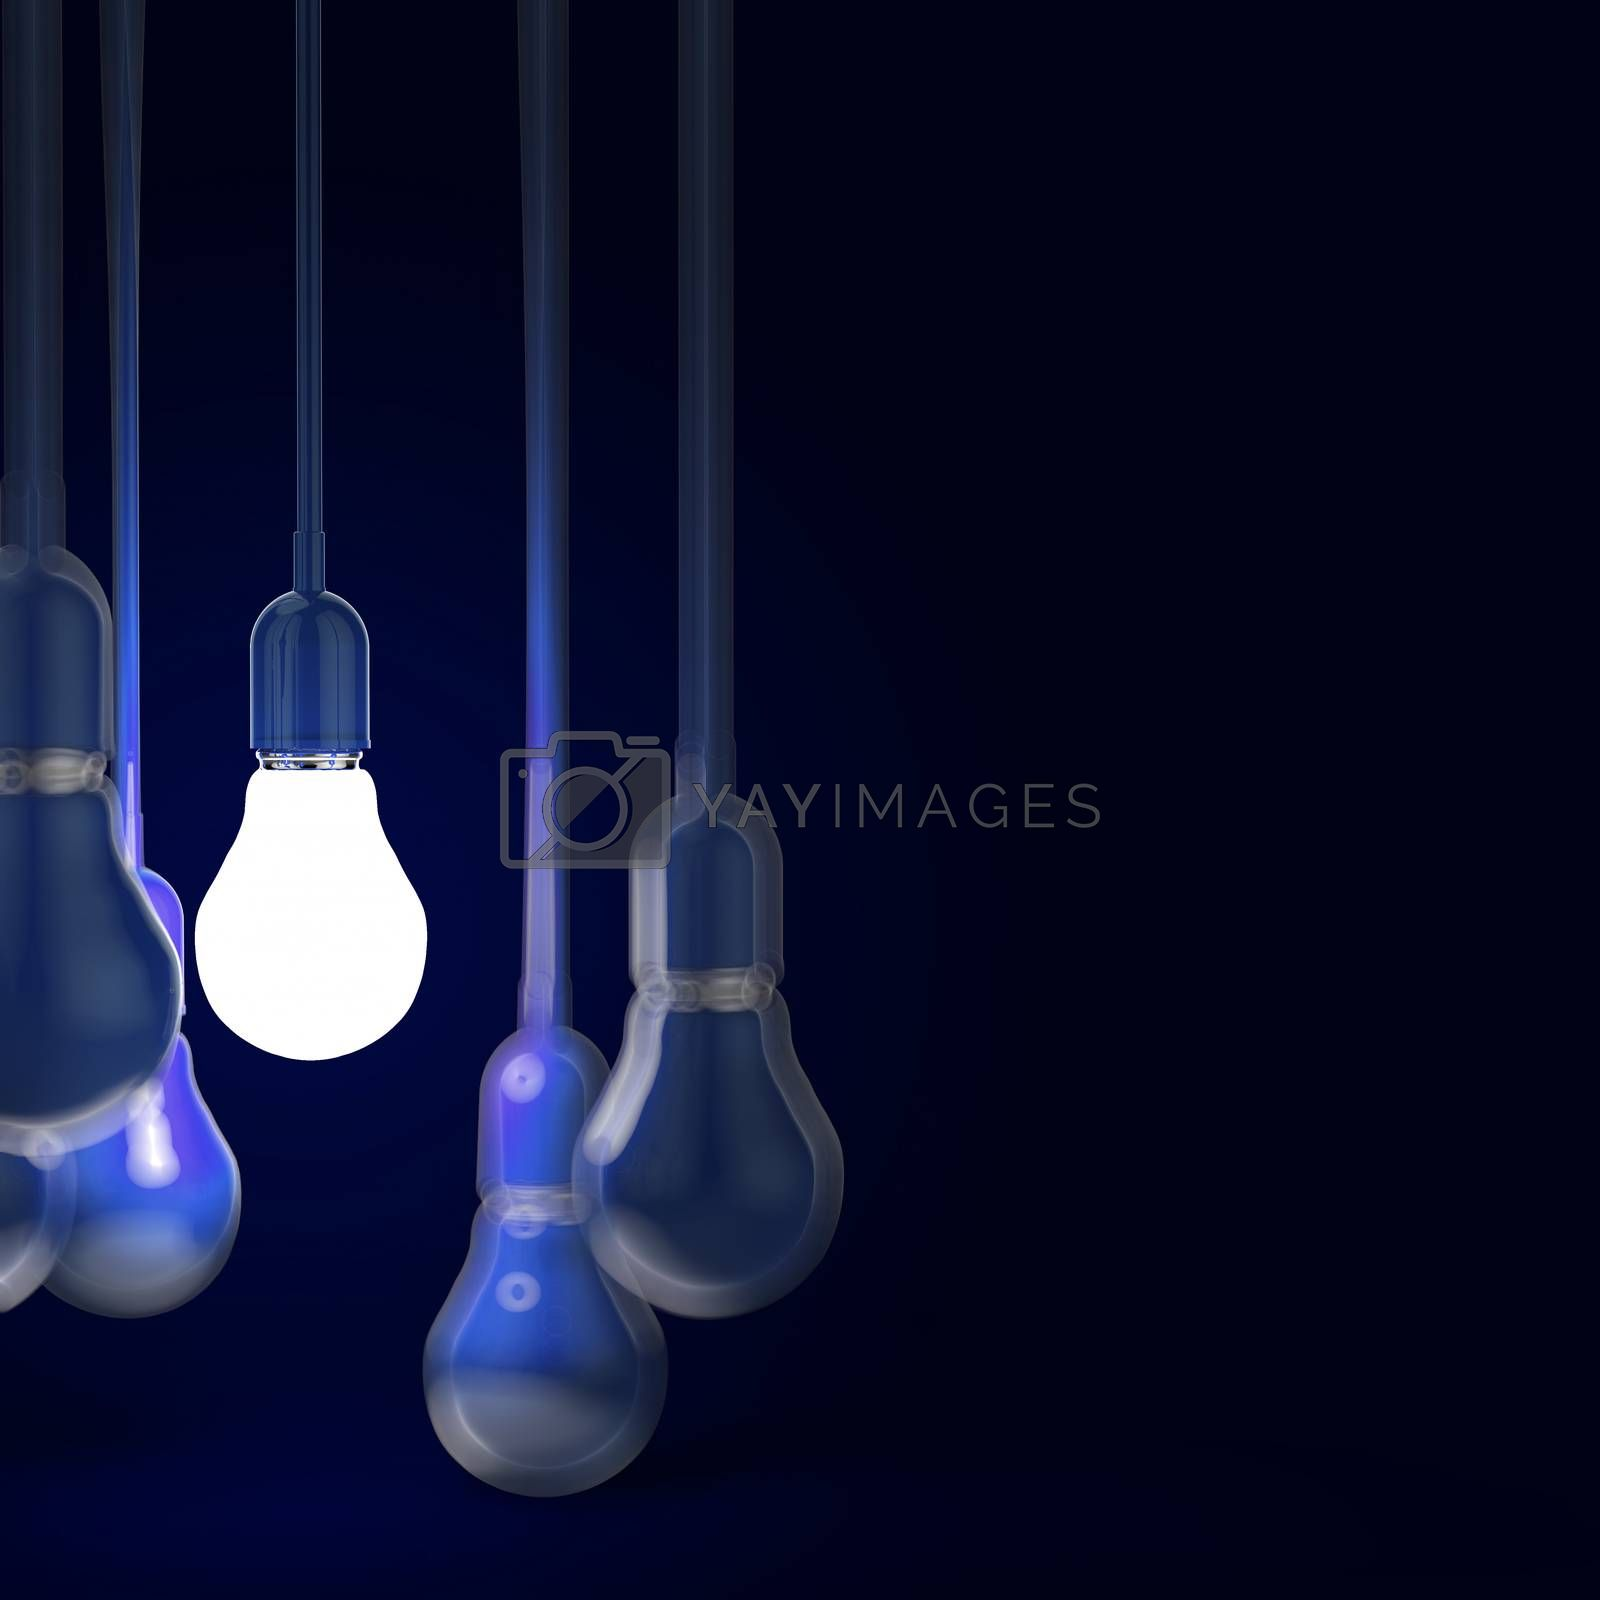 Royalty free image of creative idea and leadership concept with 3d light bulb by everythingpossible